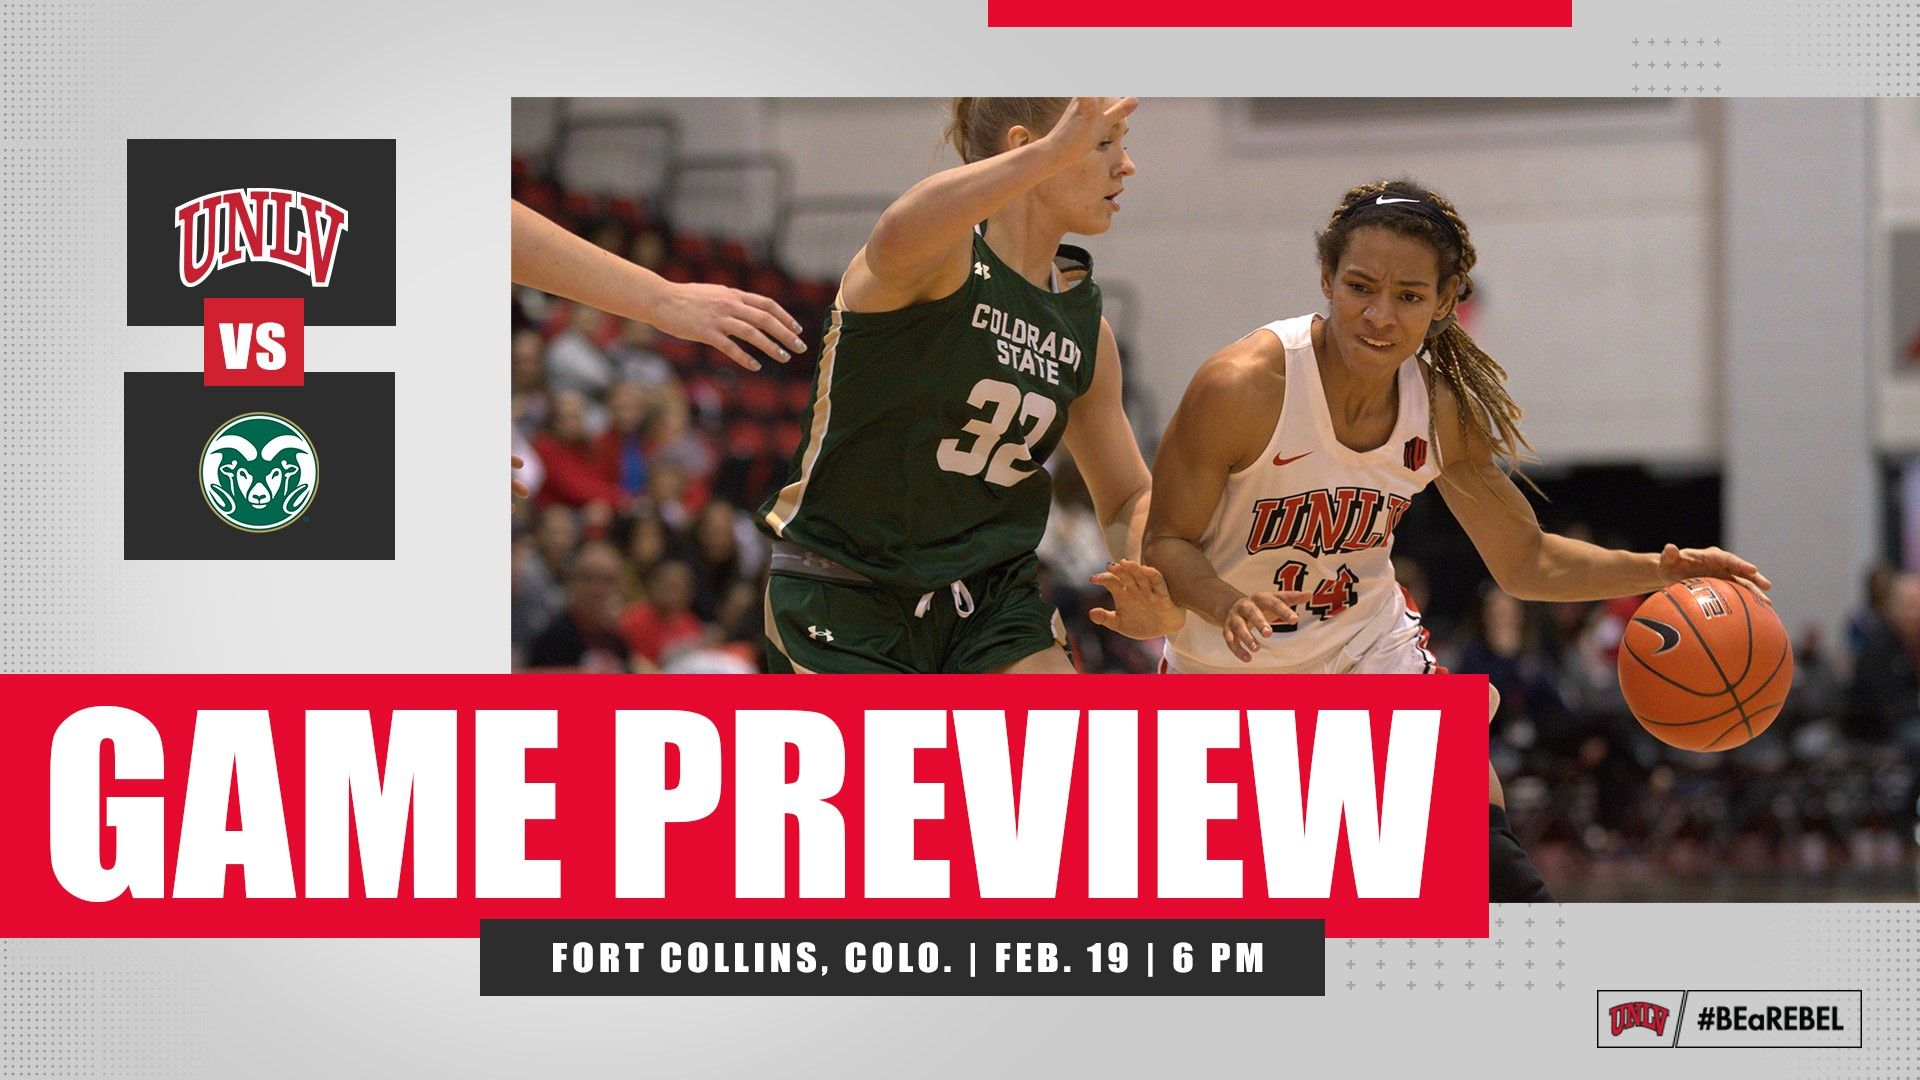 UNLV WOMEN'S BASKETBALL SET FOR WEDNESDAY ROAD CONTEST AT